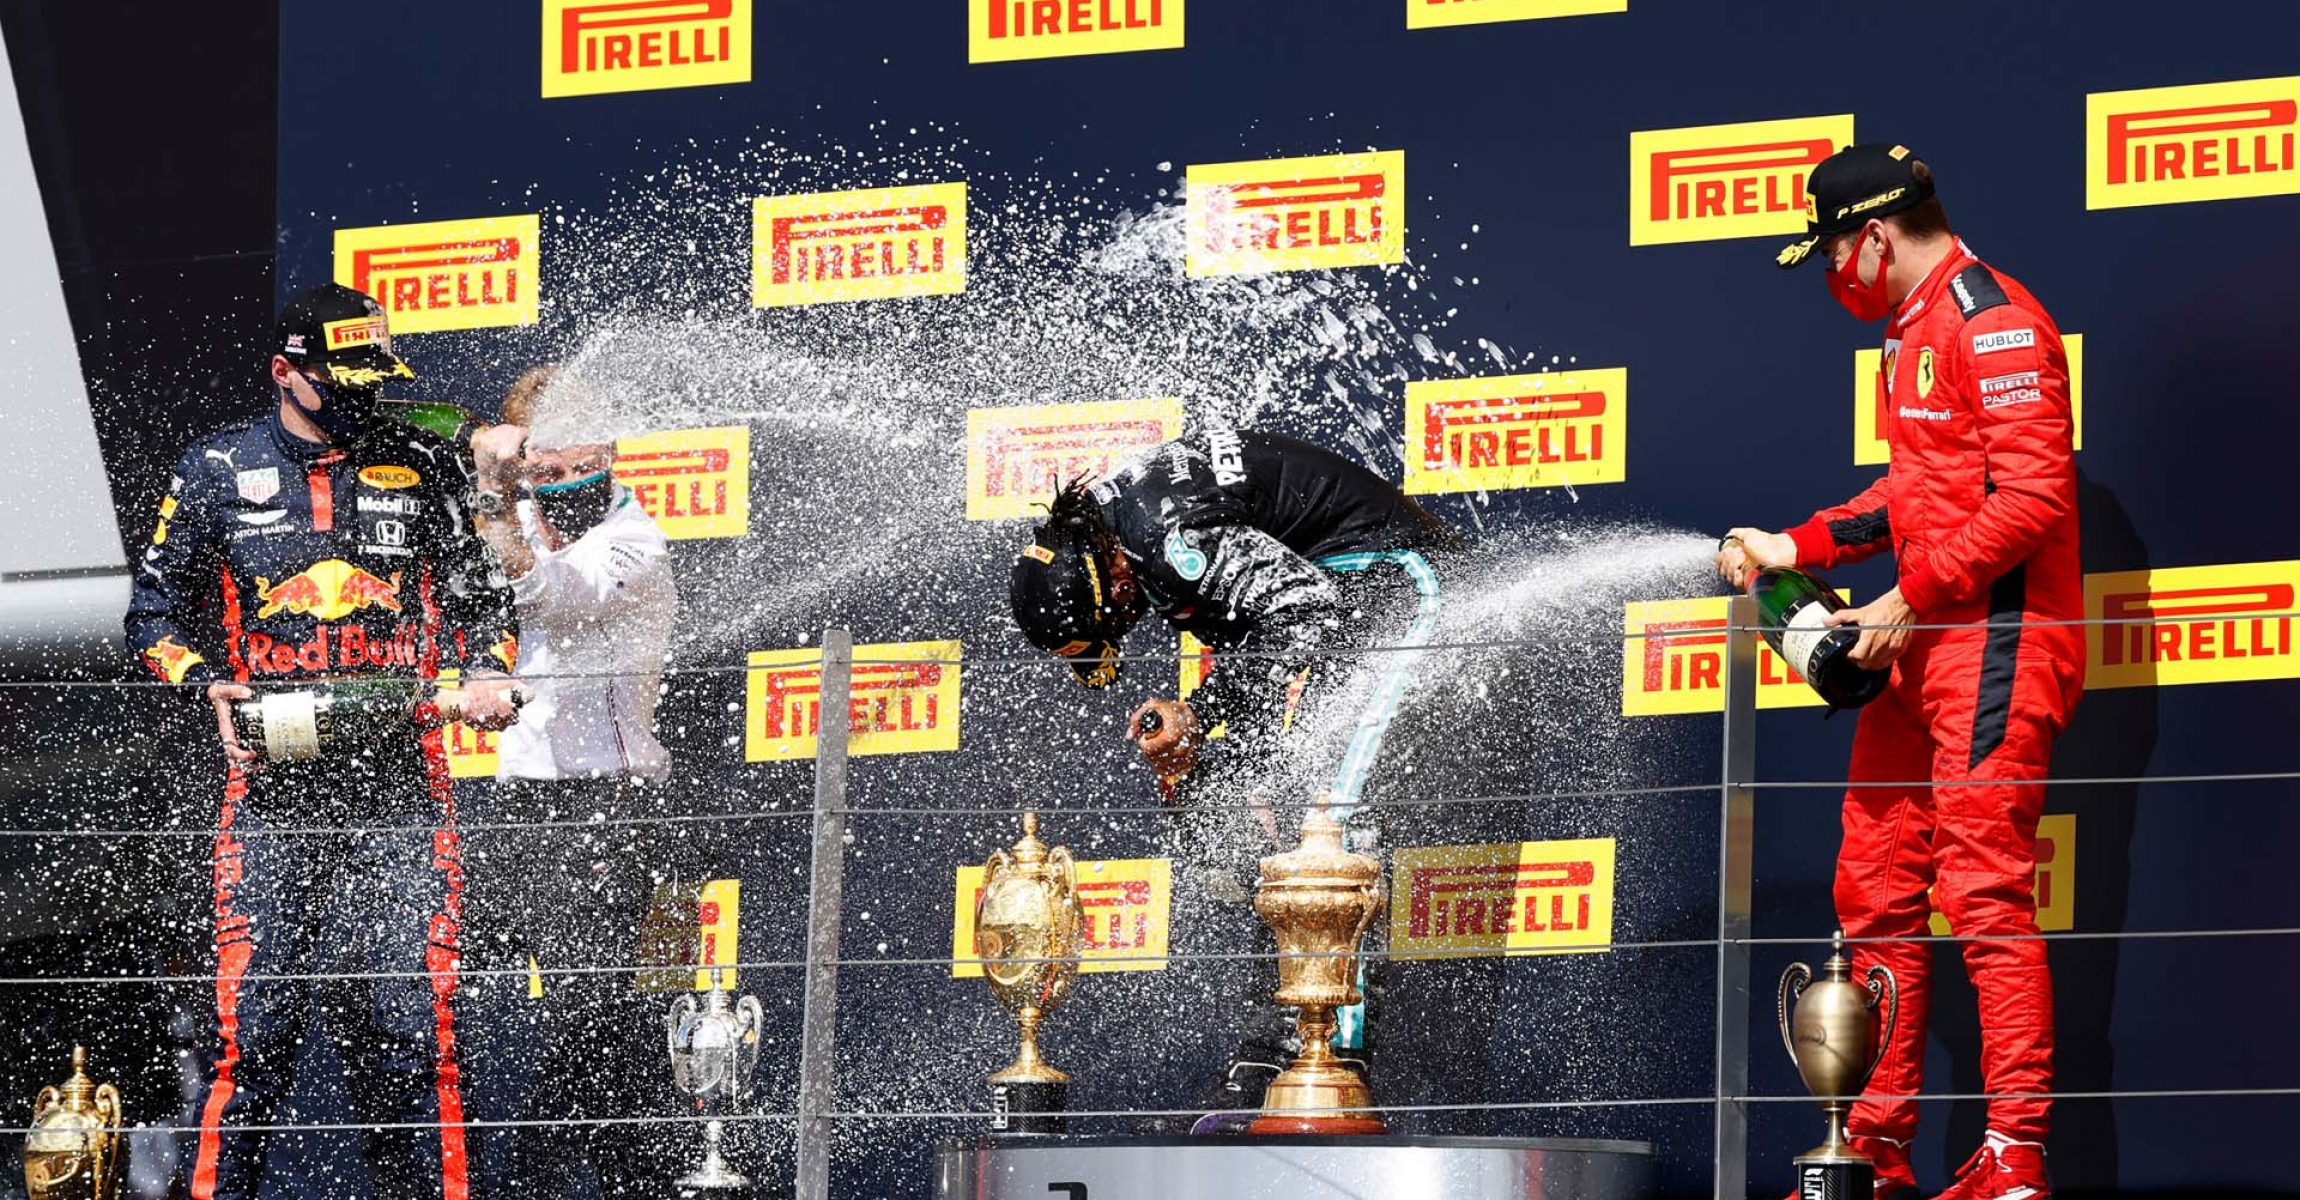 NORTHAMPTON, ENGLAND - AUGUST 02: Race winner Lewis Hamilton of Great Britain and Mercedes GP (C), runner-up Max Verstappen of Netherlands and Red Bull Racing (L) and third-placed Charles Leclerc of Monaco and Ferrari (R) celebrate on the podium during the F1 Grand Prix of Great Britain at Silverstone on August 02, 2020 in Northampton, England. (Photo by Andrew Boyers/Pool via Getty Images) // Getty Images / Red Bull Content Pool  // AP-24TQHBWB92111 // Usage for editorial use only //